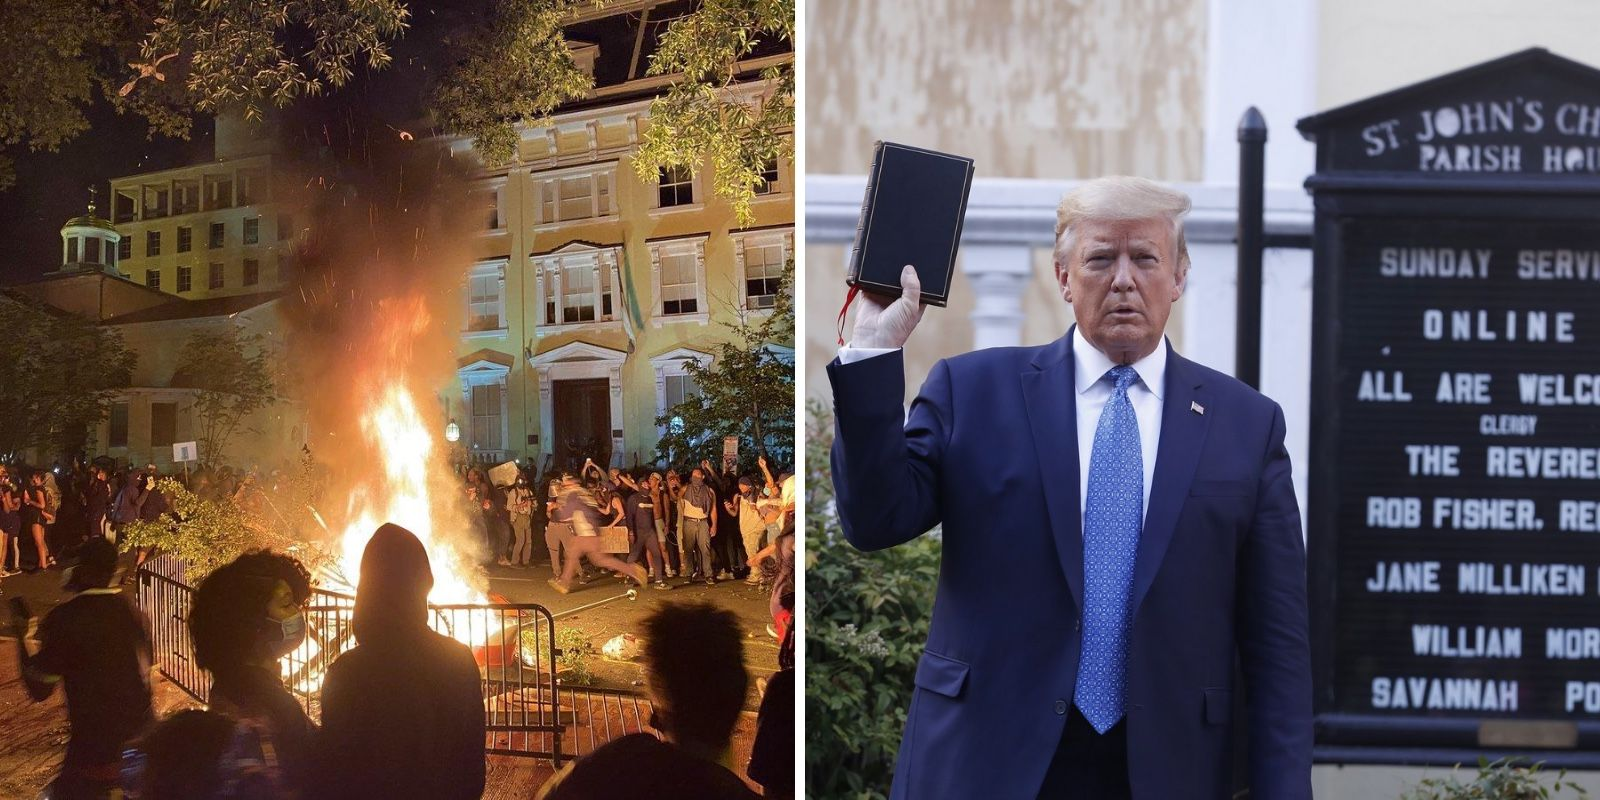 REVEALED: DC mayor, not Trump, responsible for 'tear gassing' protestors in Lafayette Square